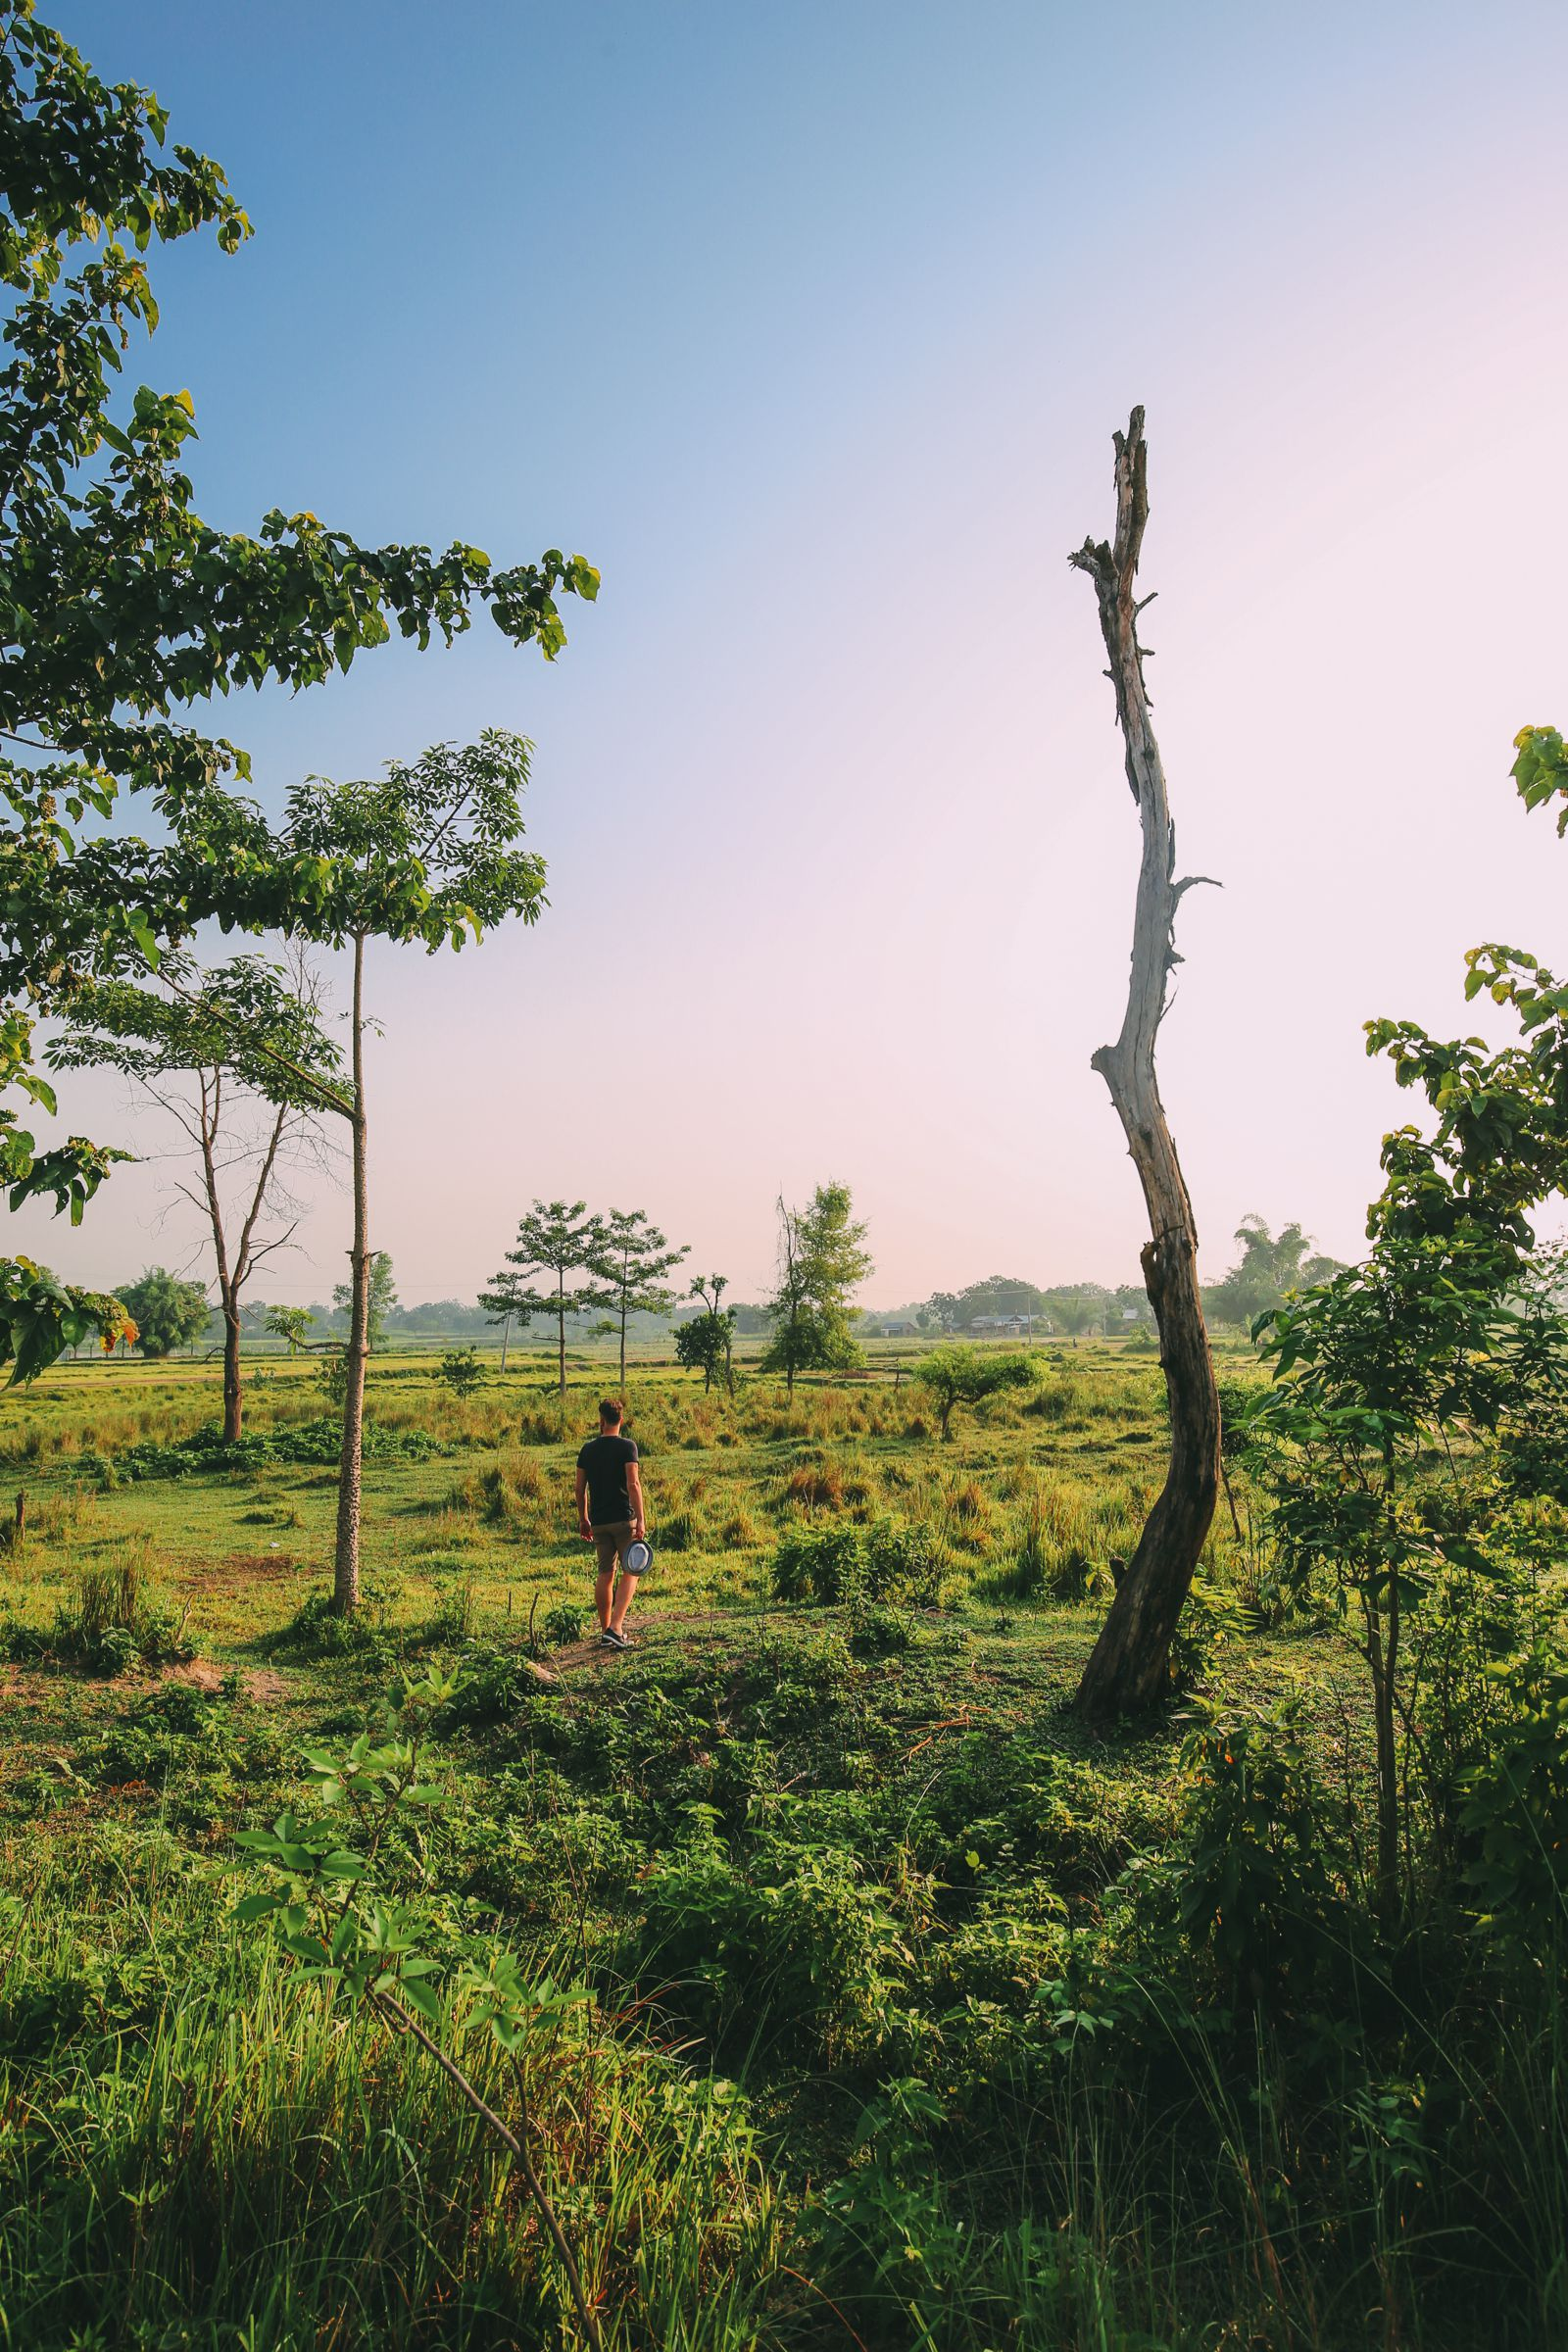 The Sights, Sounds And People Of Chitwan, Nepal (1)